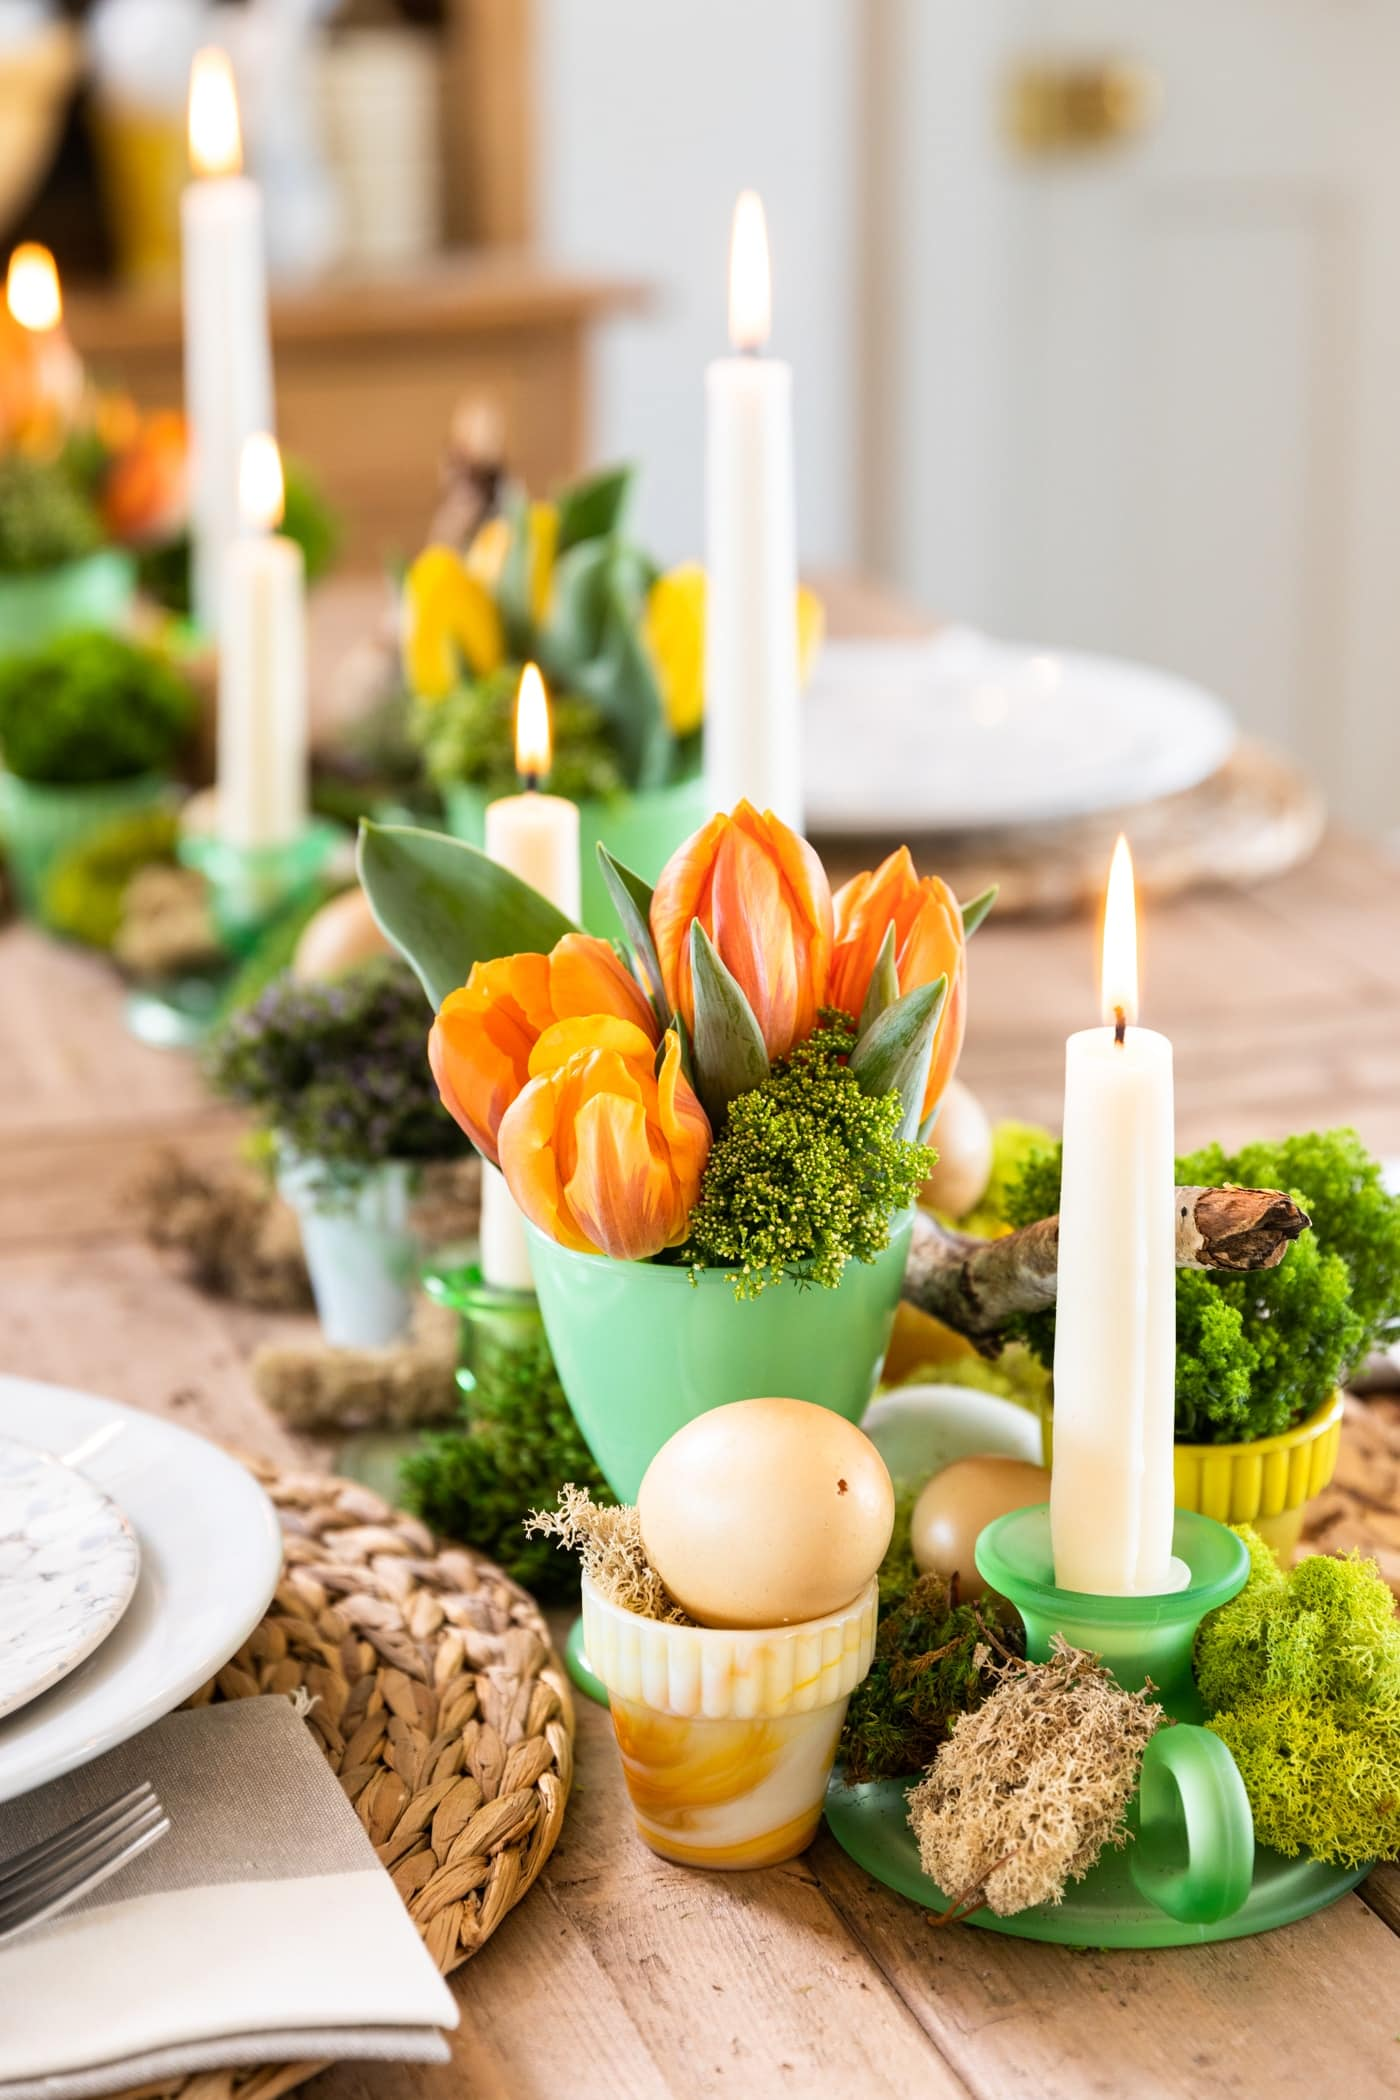 Green vase filled with orange tulips all on wood table with candles lit and white plates set around